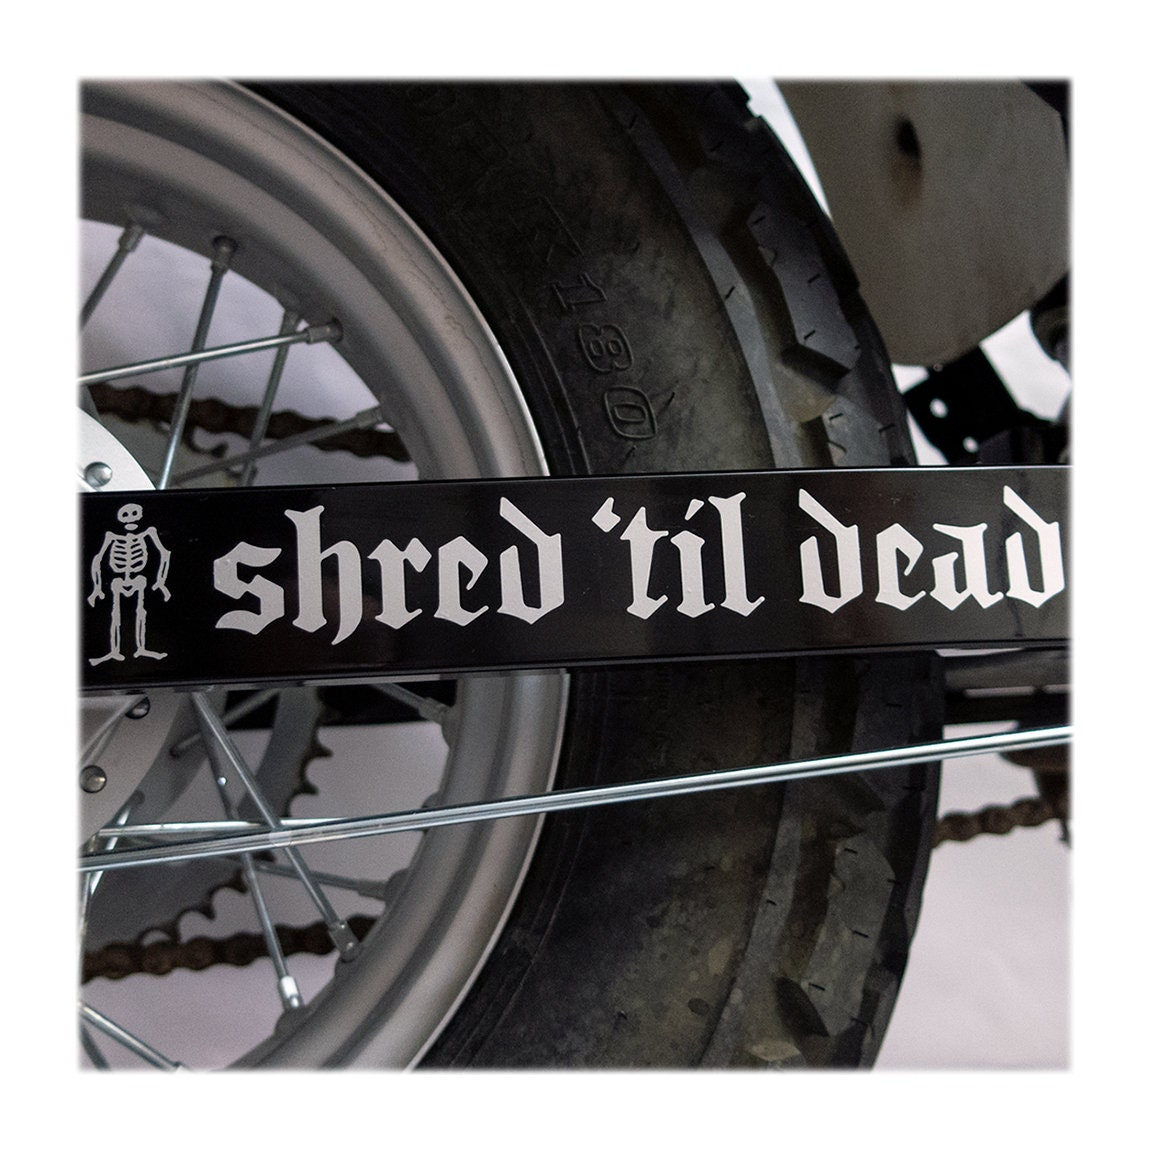 938981969db DECAL Choose Color & Size - Shred 'Til Dead Vinyl Window Decal - Ships free  within the United States